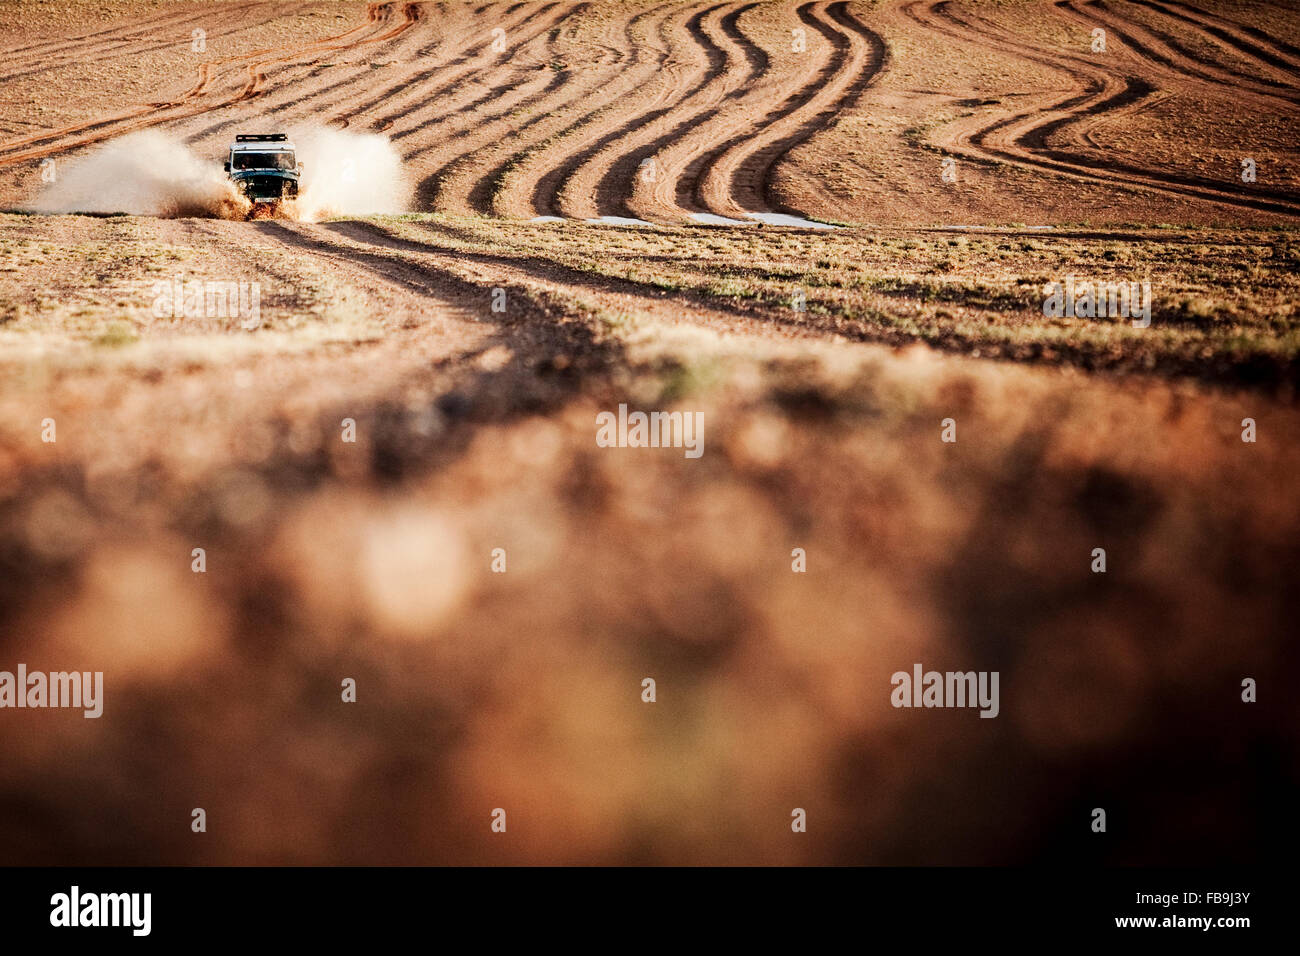 A Russian 4WD in action in the Gobi Desert, Mongolia. - Stock Image